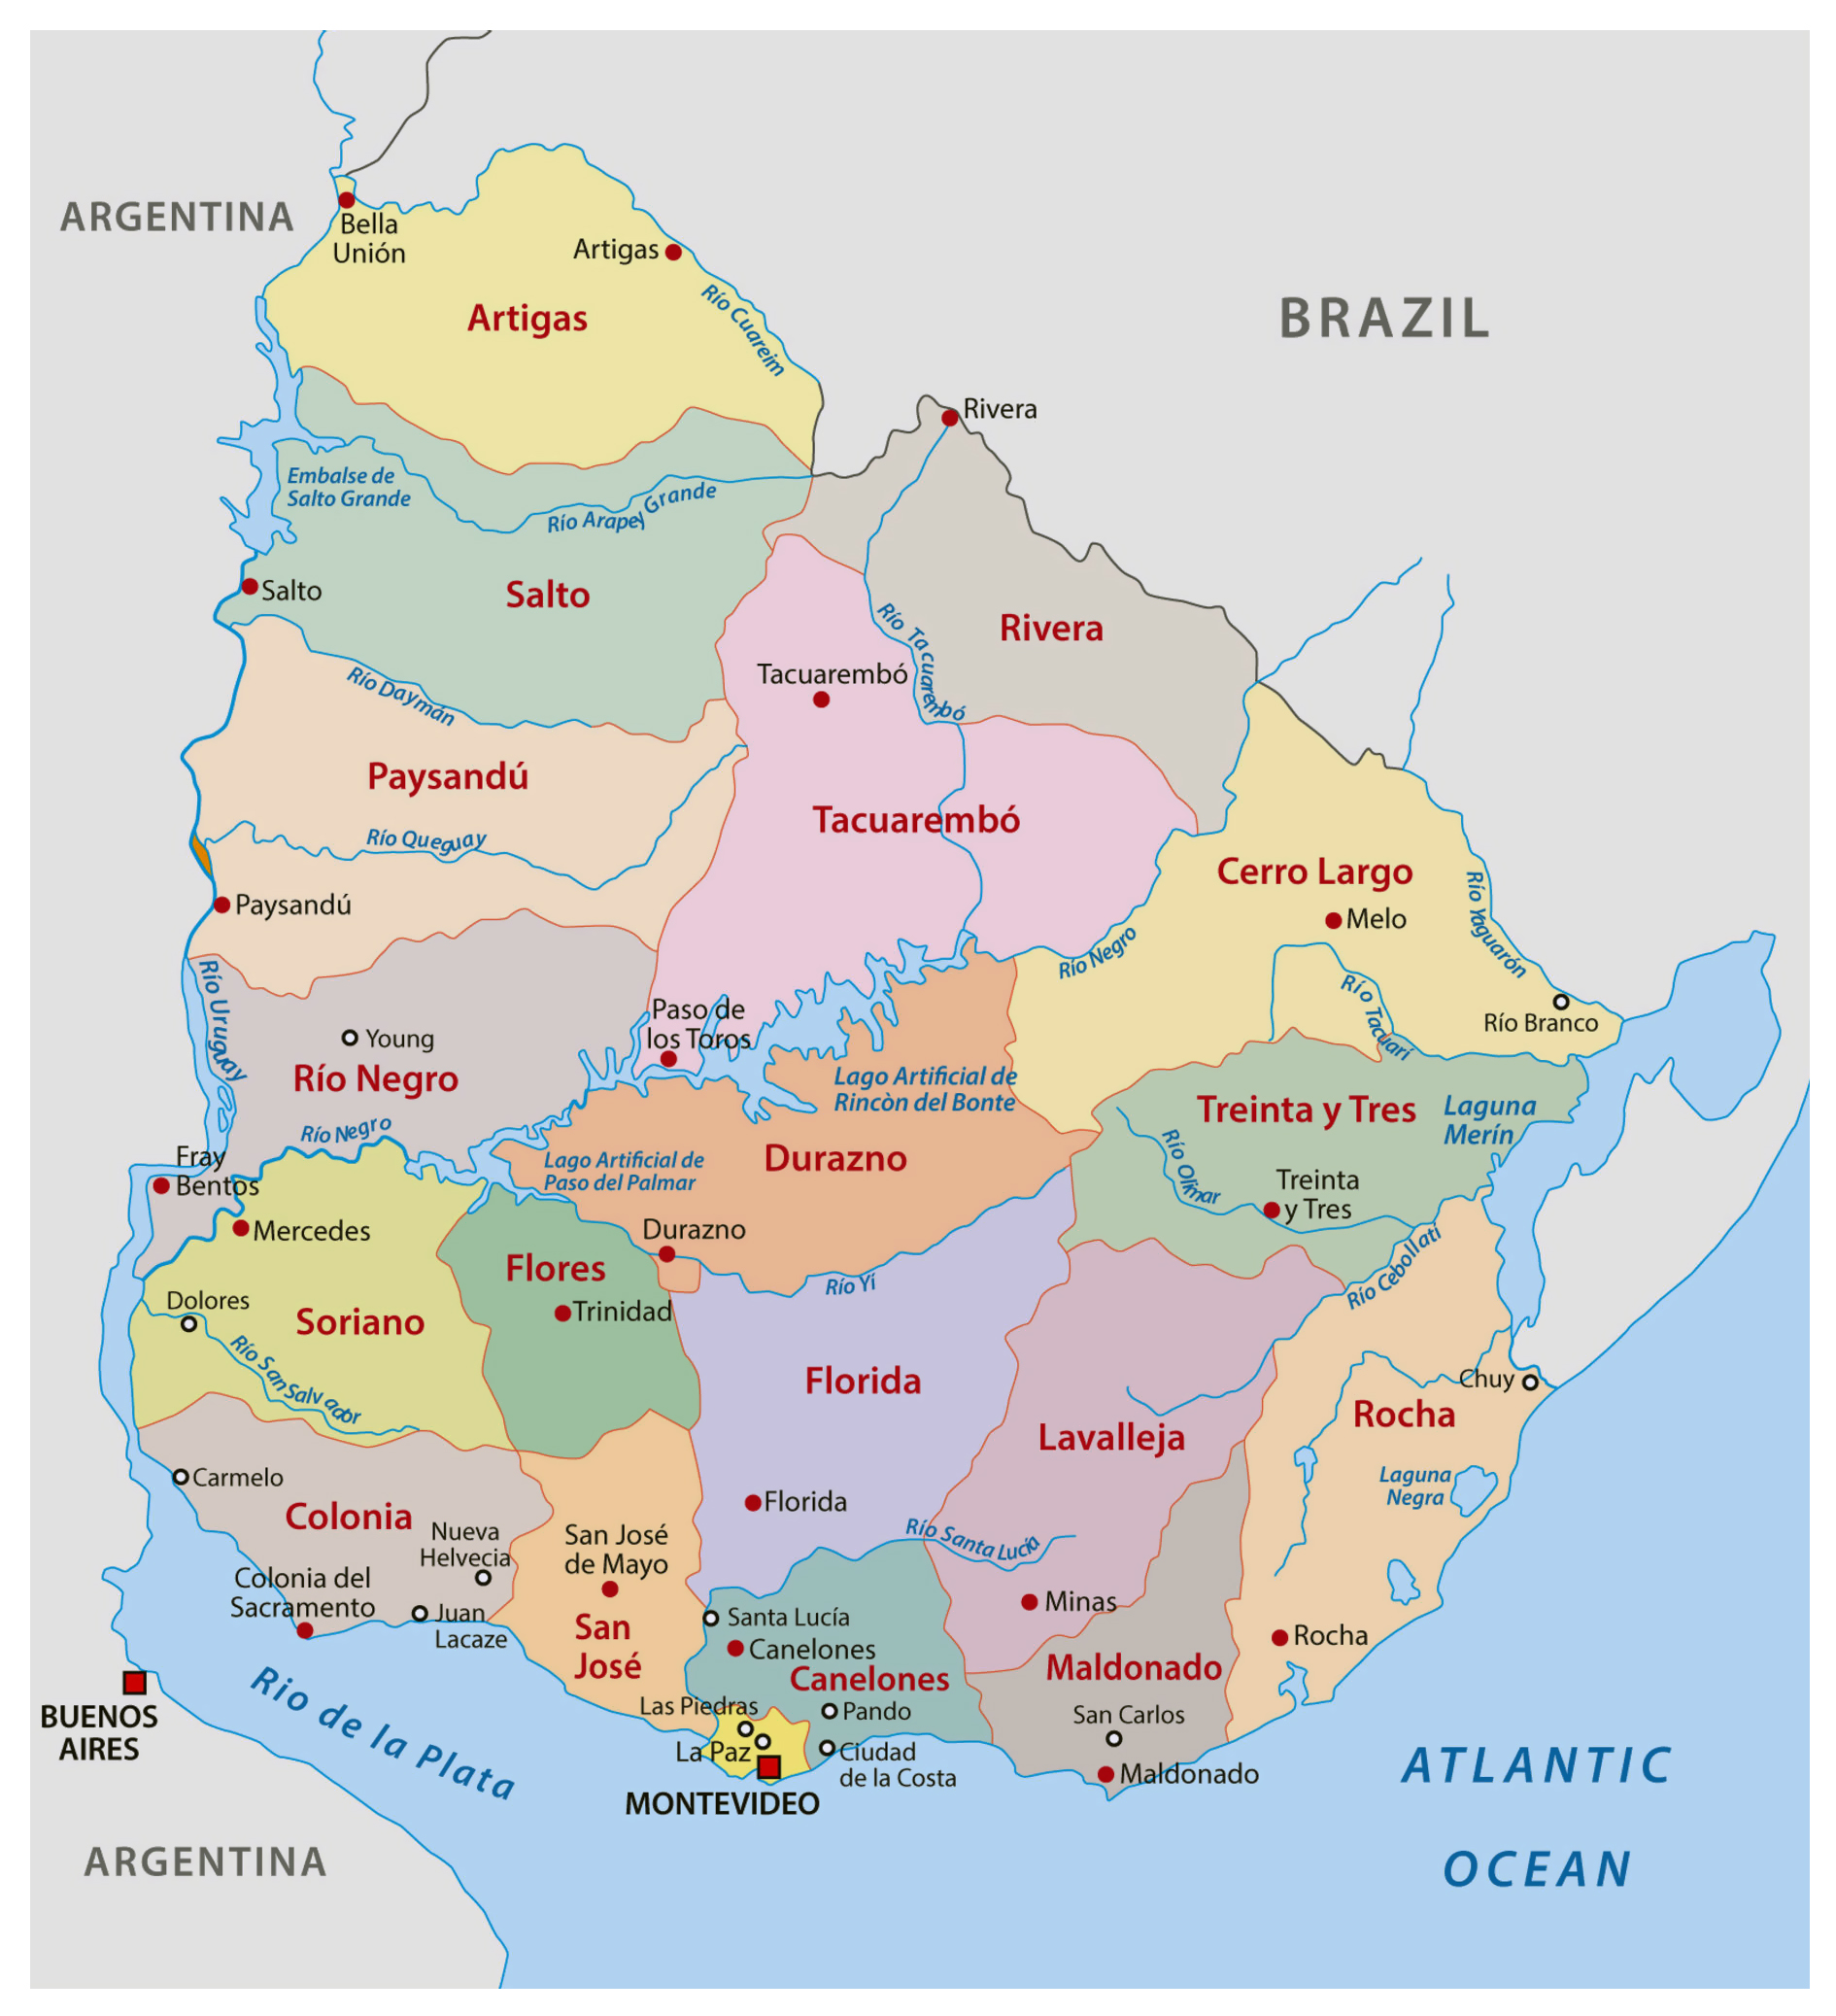 large detailed administrative divisions map of uruguay  uruguay  - large detailed administrative divisions map of uruguay